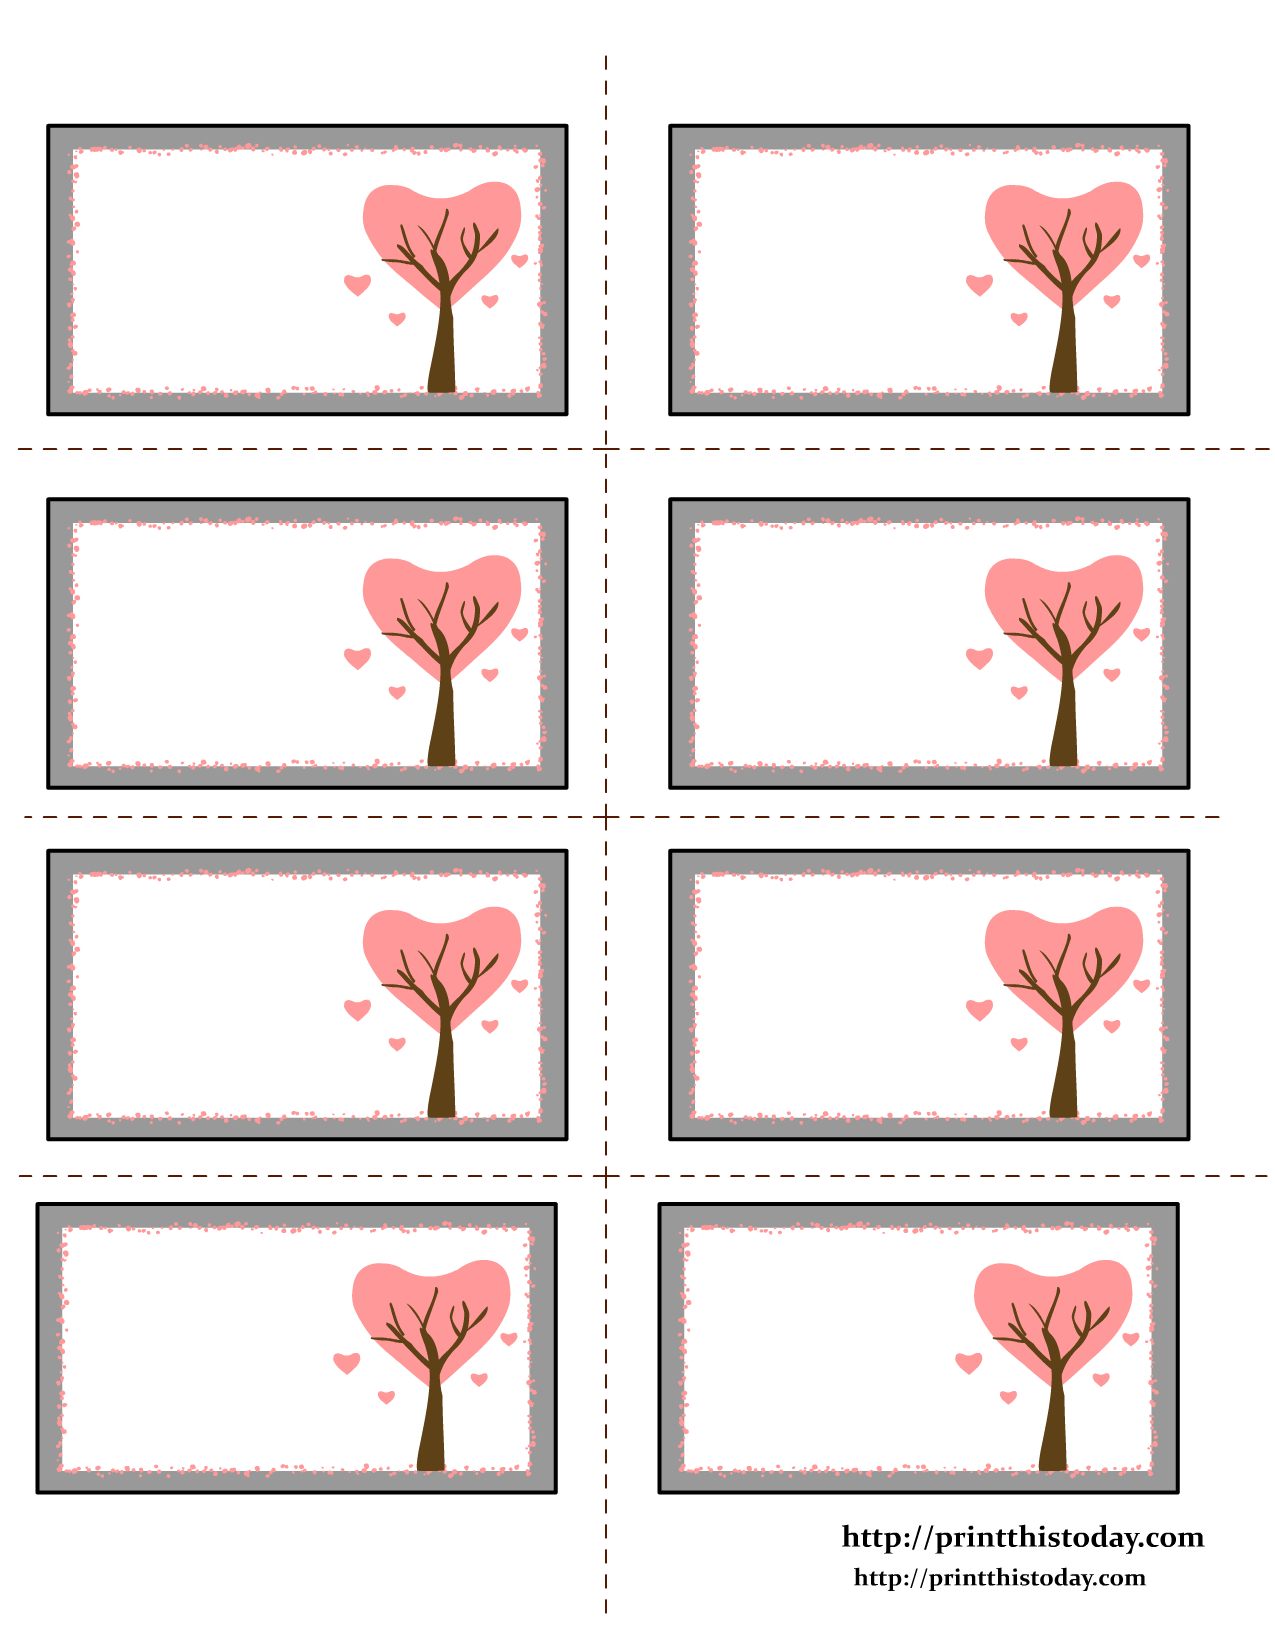 Etiquettes Imprimables   Valentine Labels With Love Birds On Tree - Free Printable Heart Labels